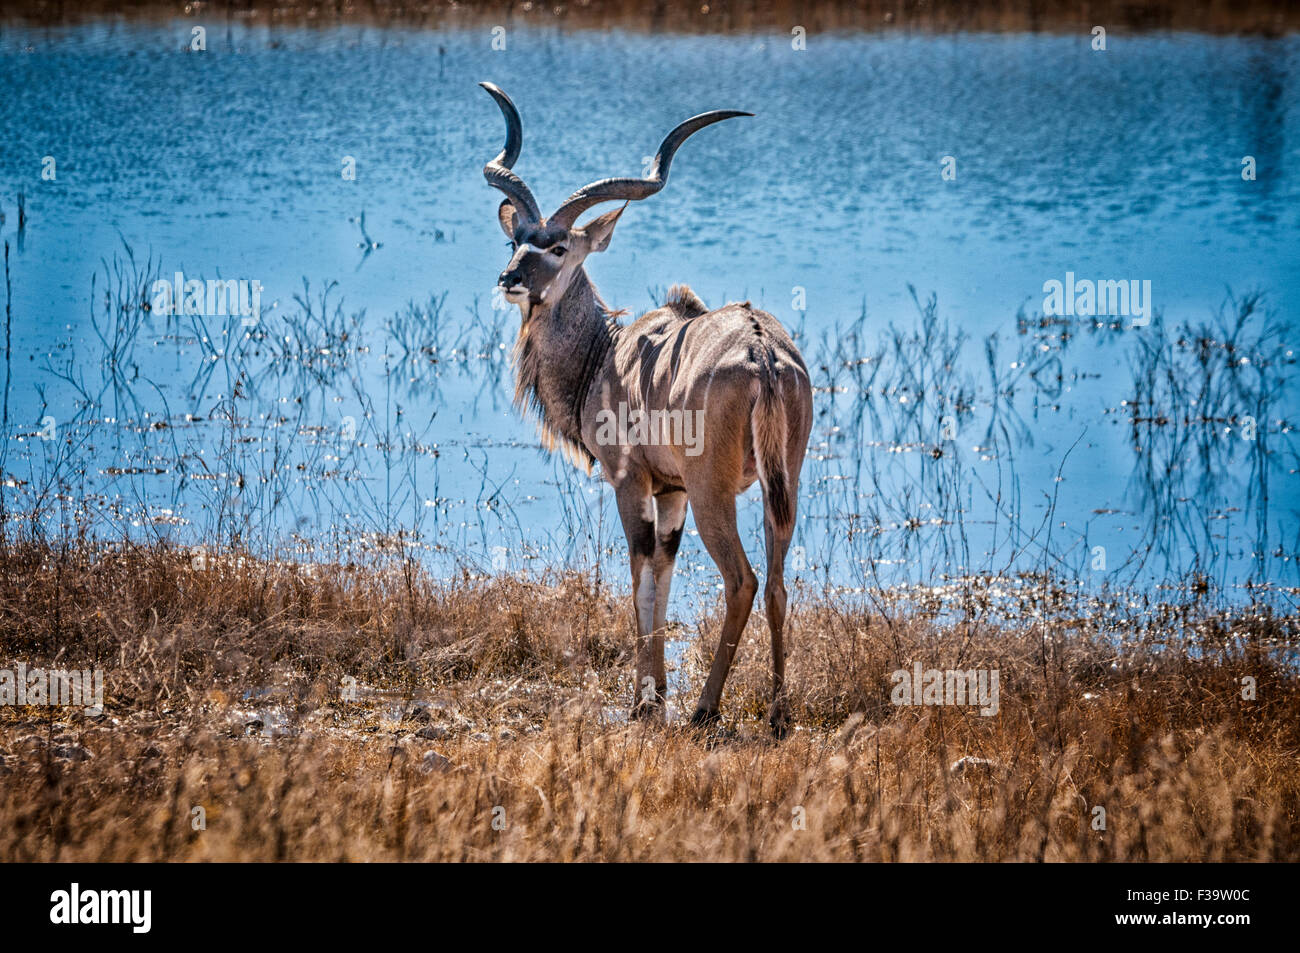 solitary-male-greater-kudu-tragelaphus-strepsiceros-standing-by-a-F39W0C.jpg